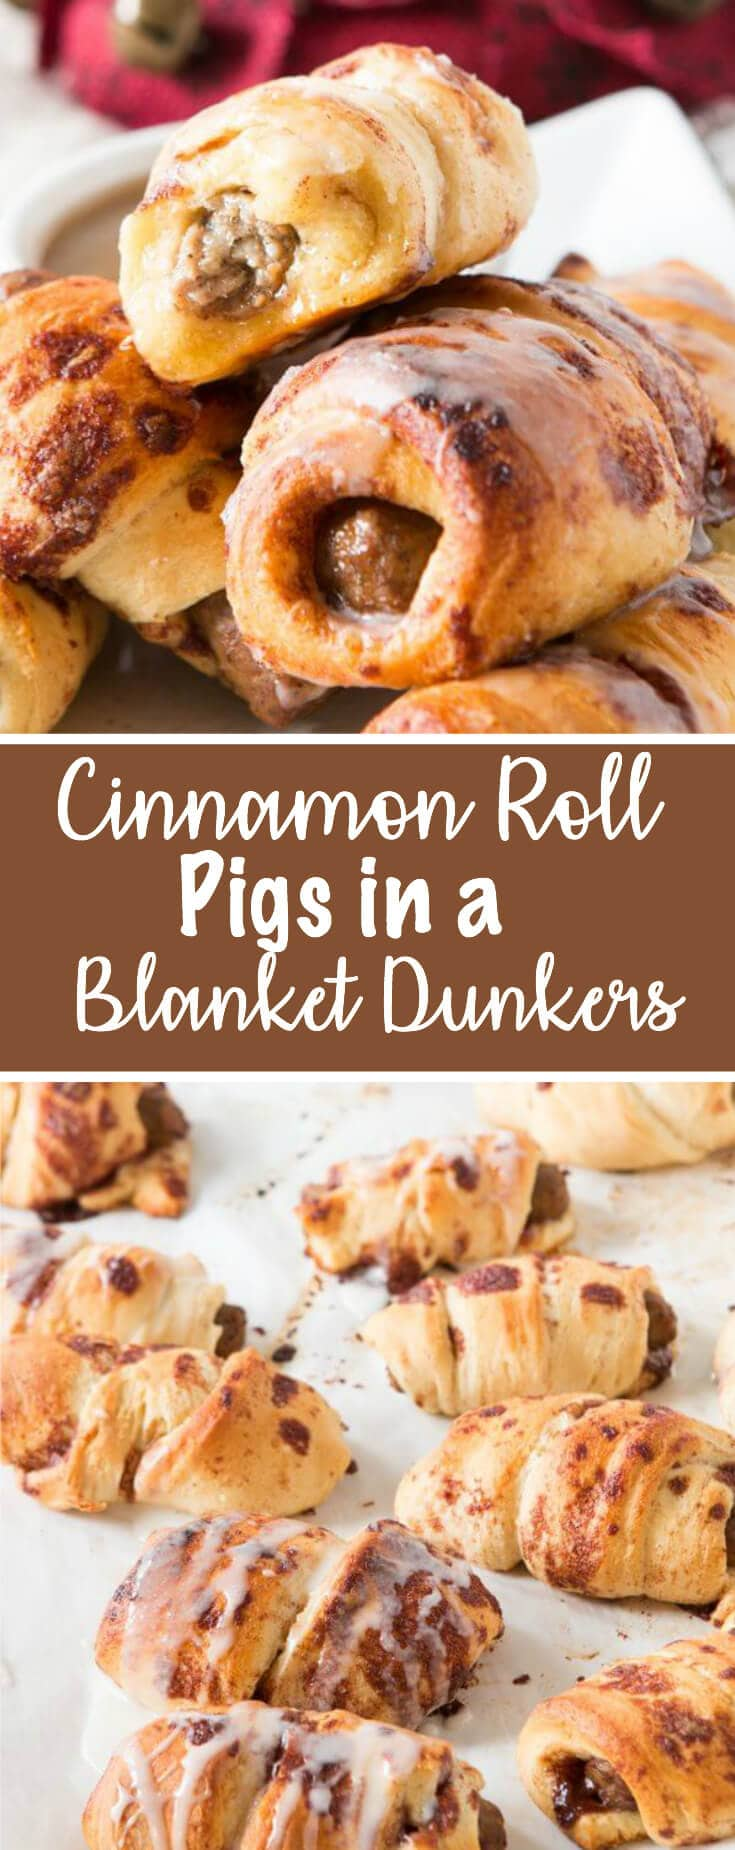 We made these cinnamon roll pigs in a blanket dunkers for breakfast the other day and it's our new go to breakfast!